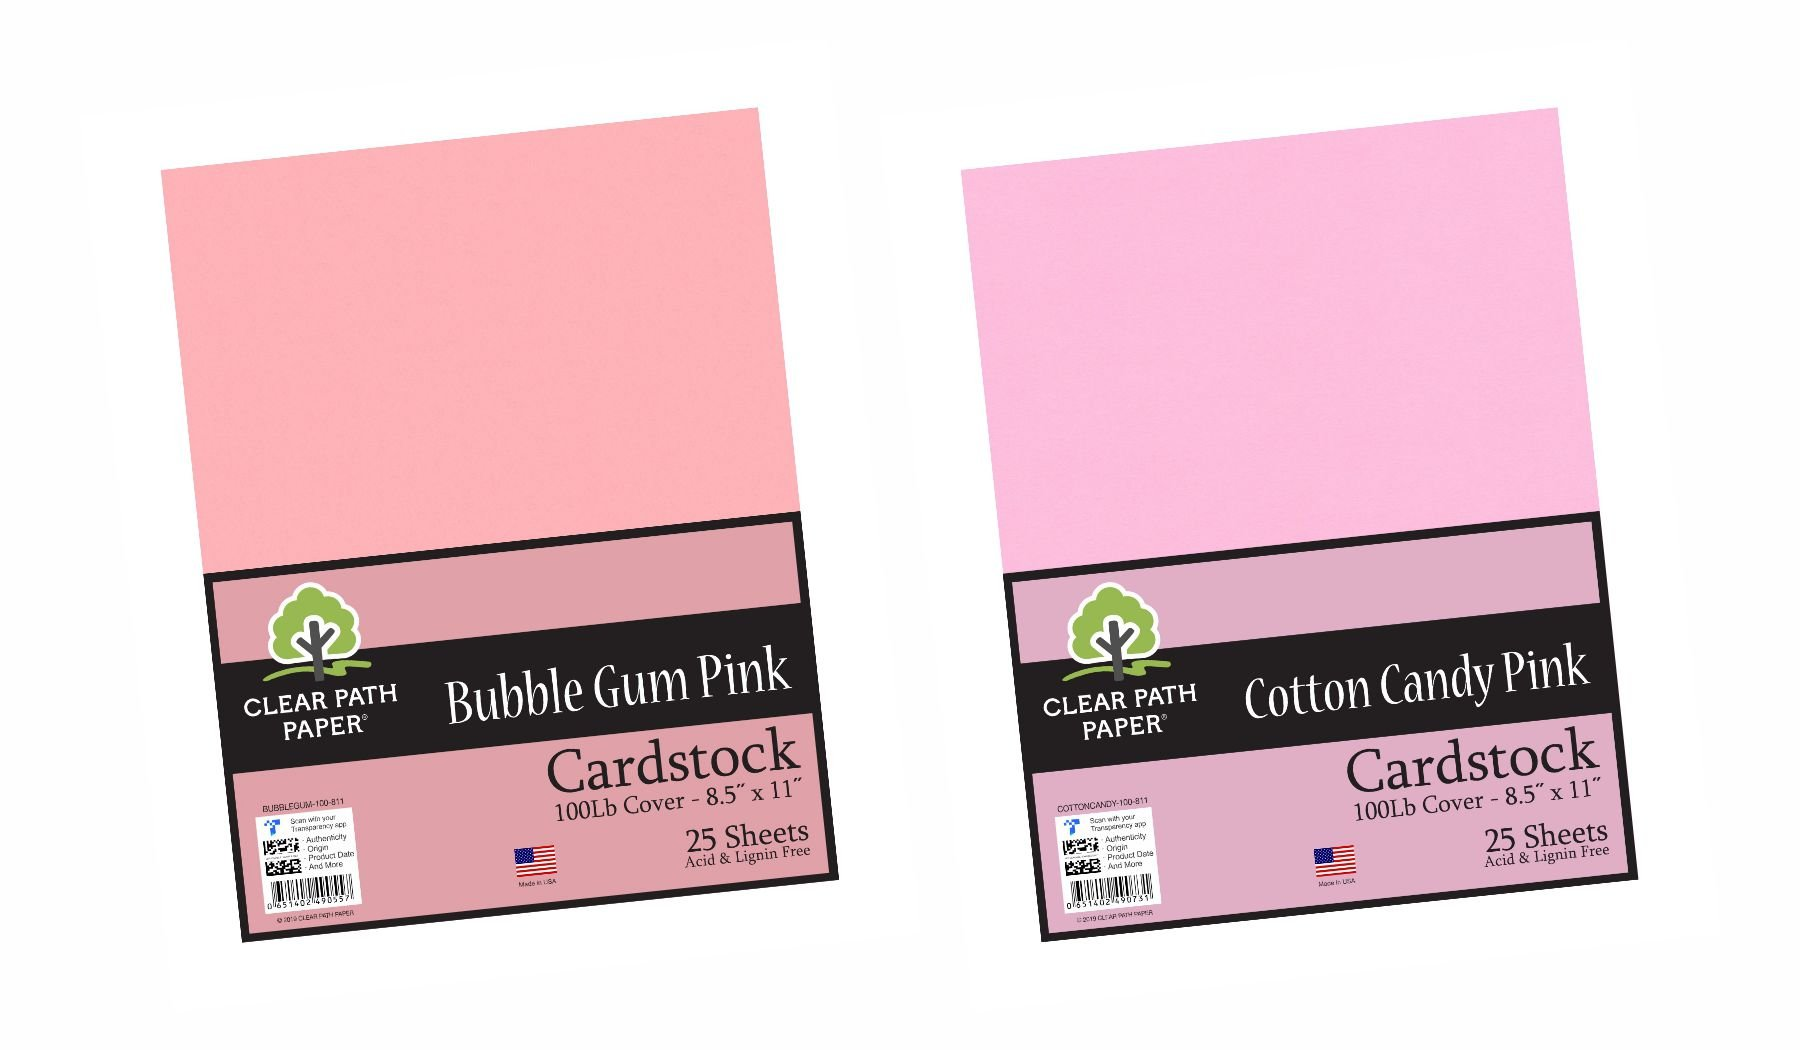 Image of the Cotton Candy Pink + Bubble Gum Pink #1 Bundle